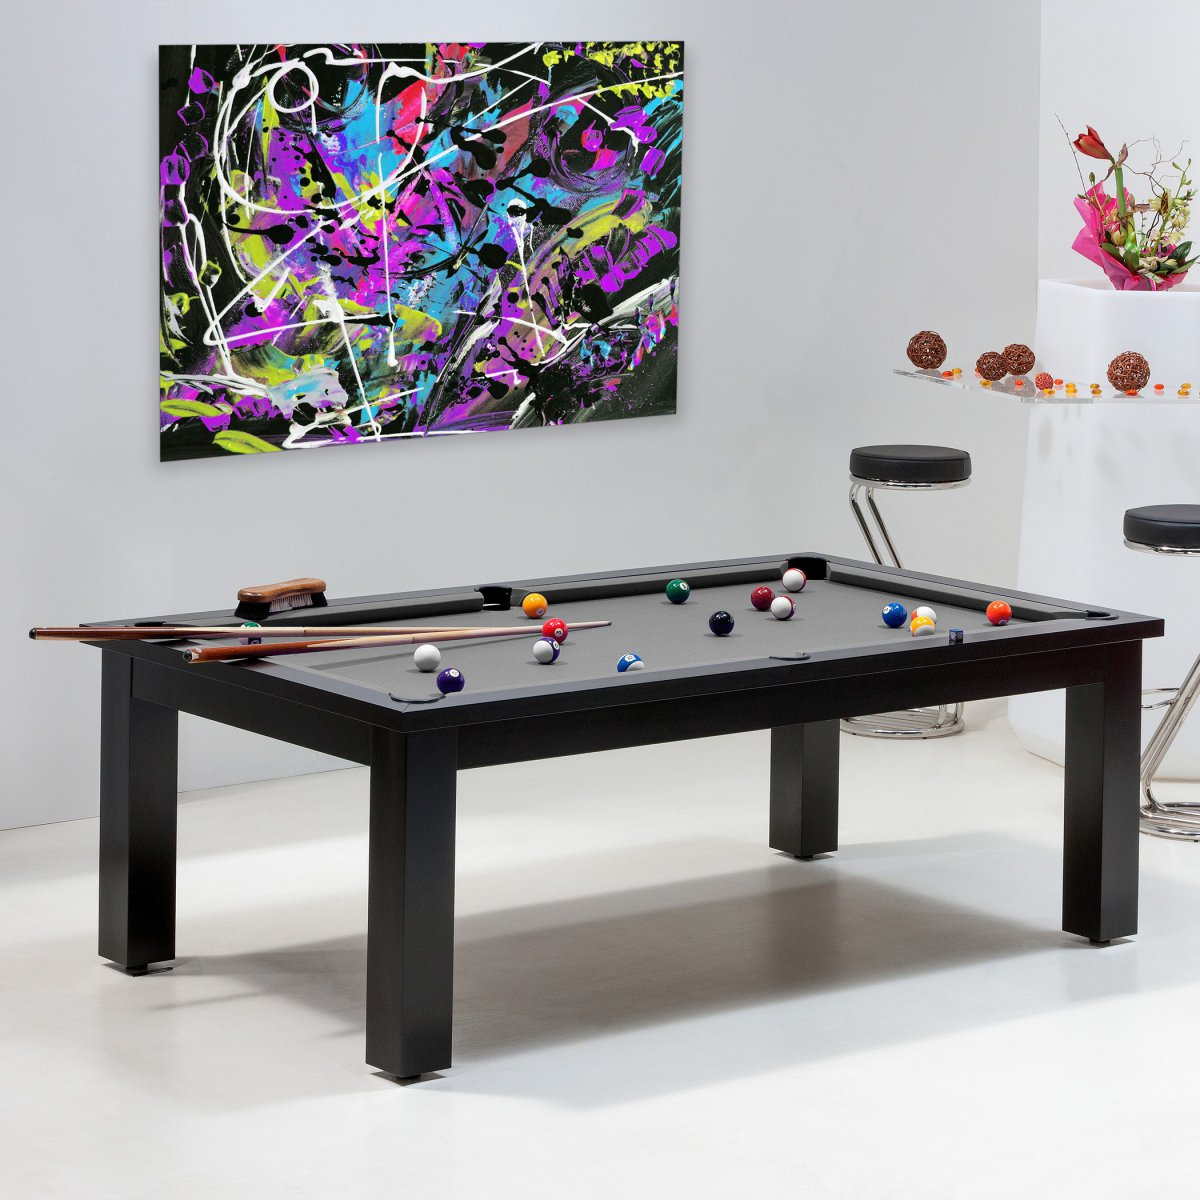 Achat billard uniquement sur billards de france le miami - Table de salon transformable ...